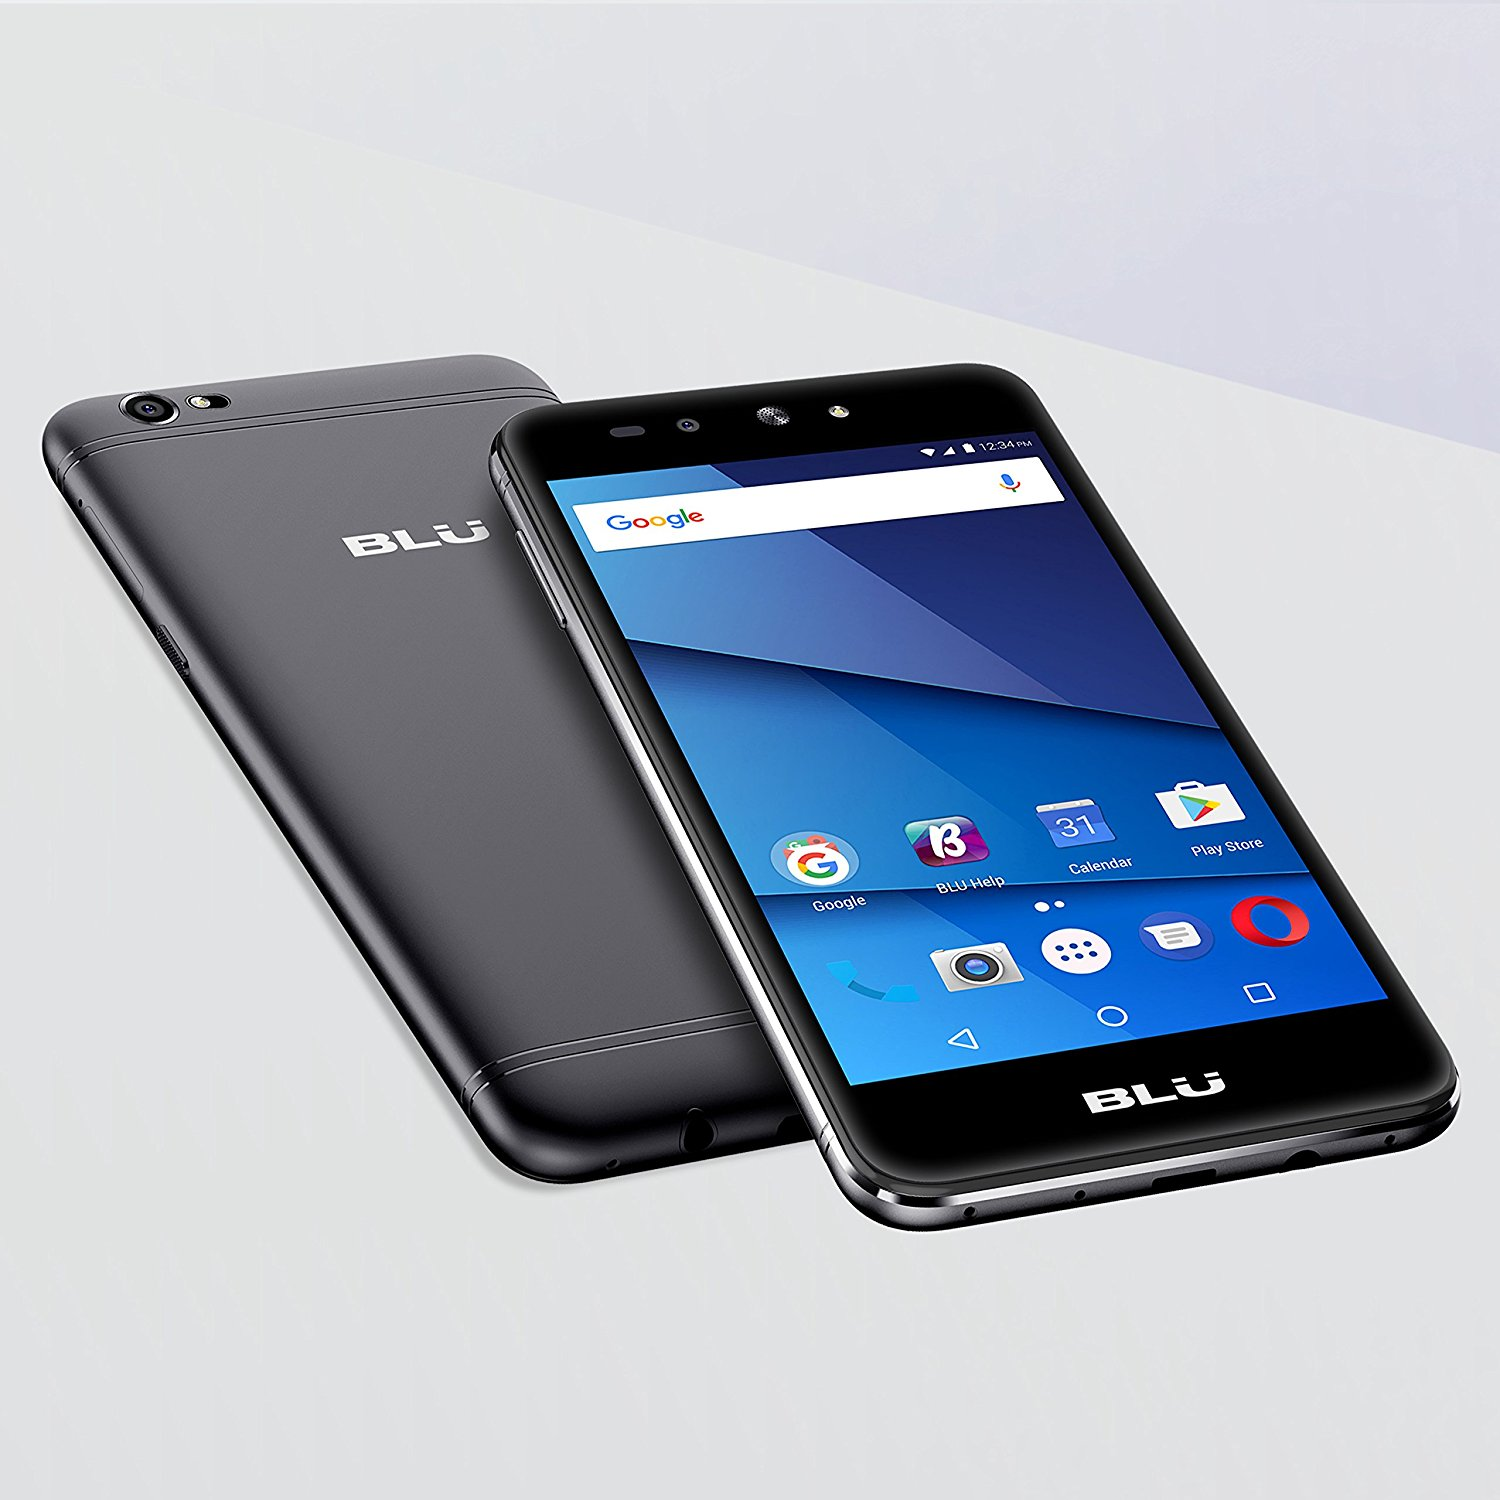 How to Flash Stock Rom on Blu Grand X LTE